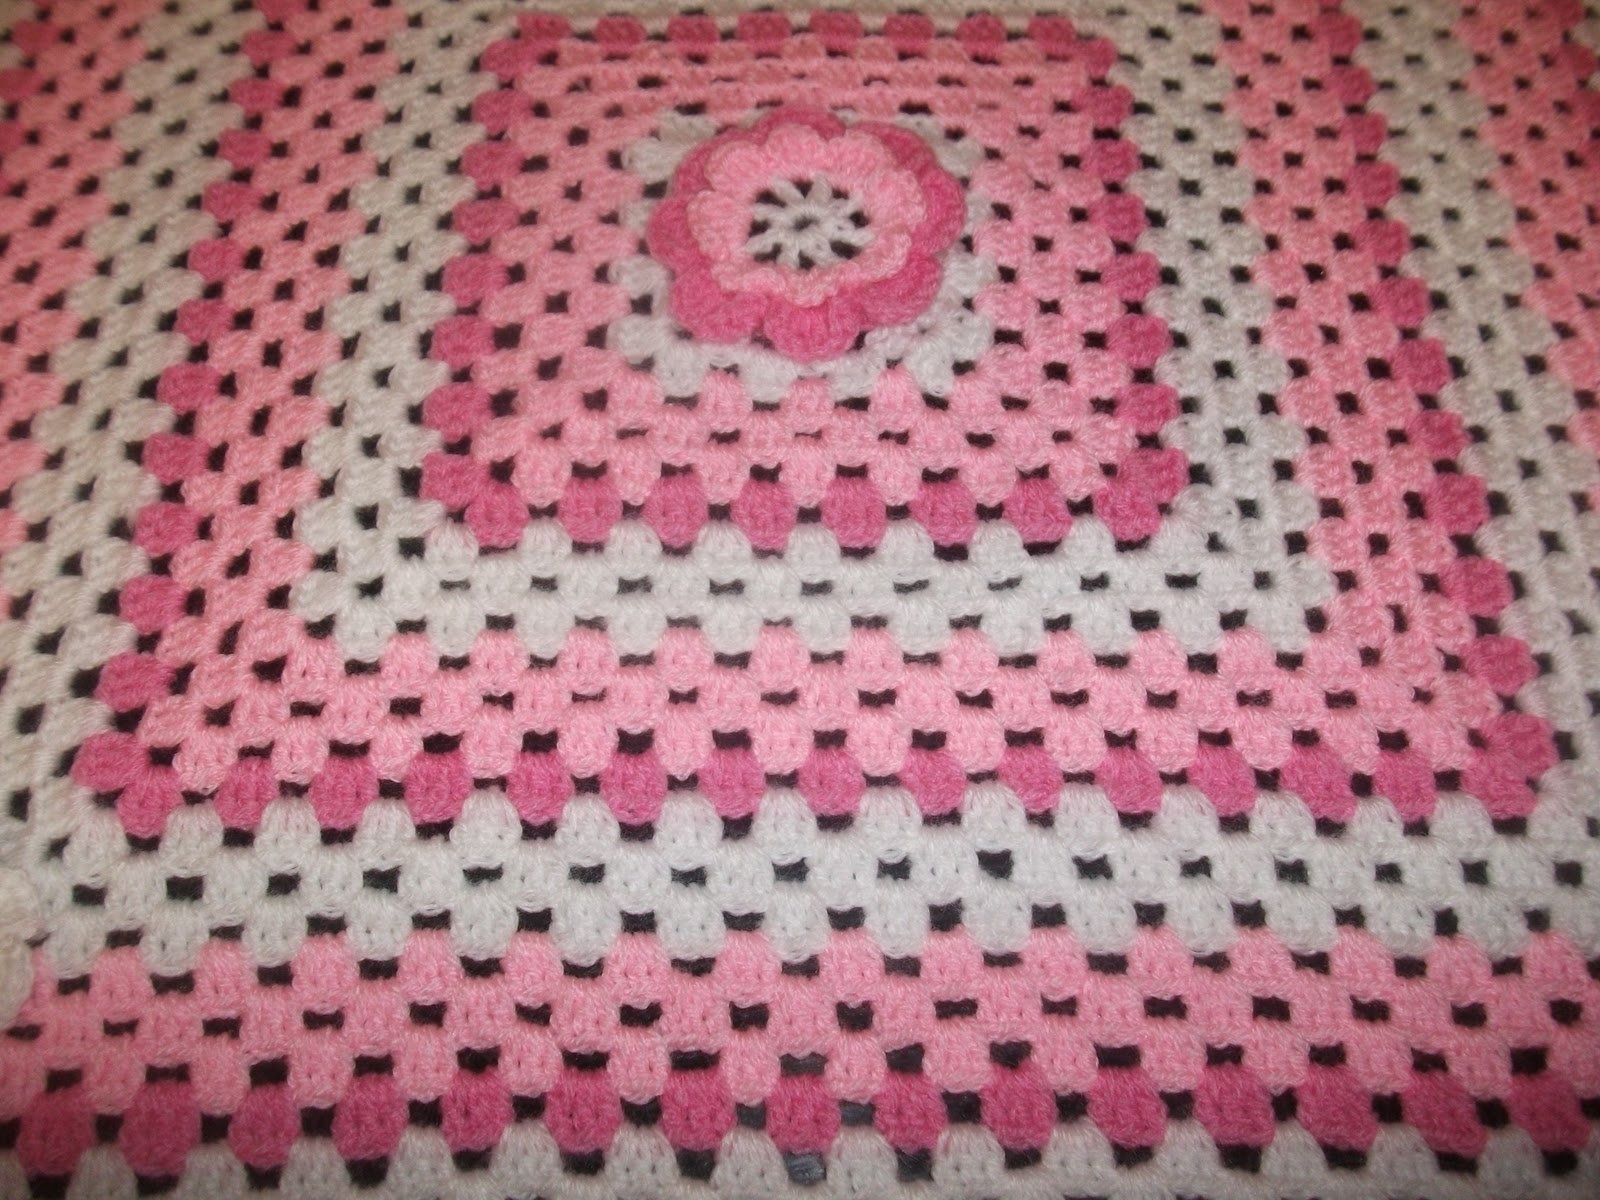 Beginner Crochet Patterns Baby Blanket : Beginner Crochet Baby Blankets ? Crochet Club